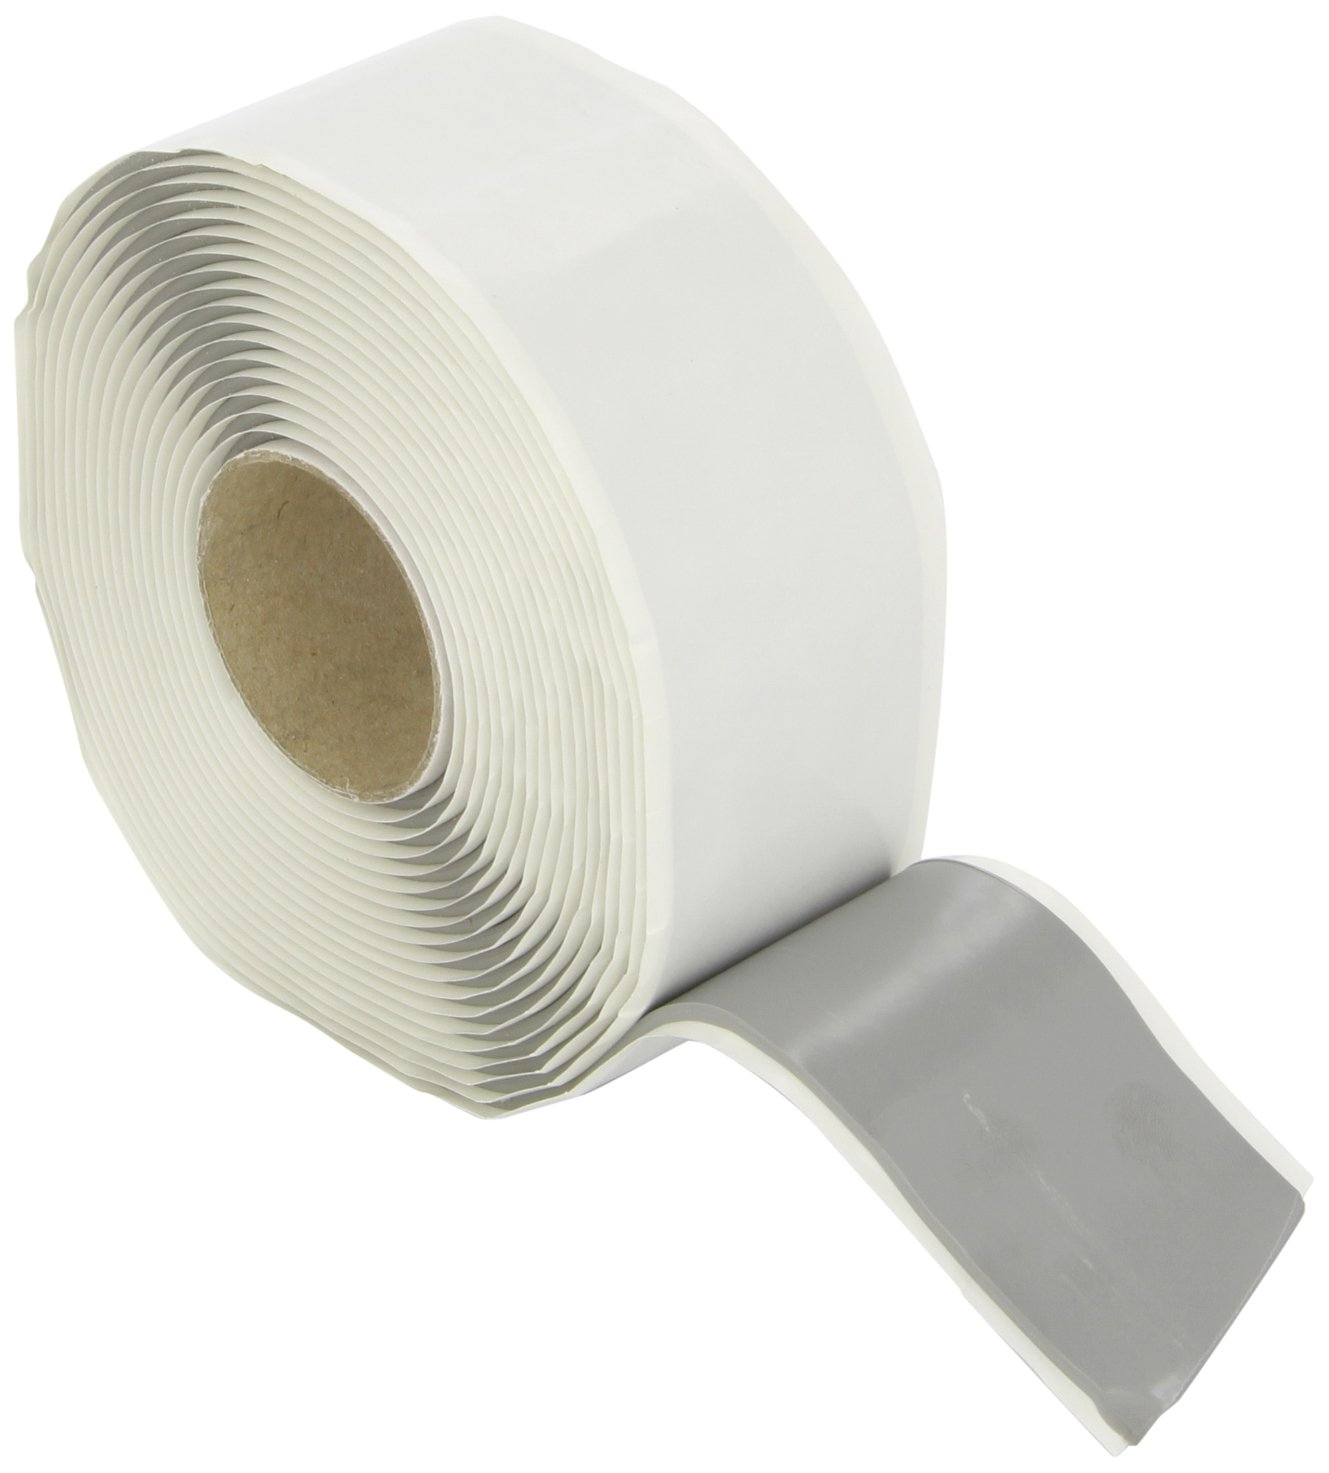 W4 Wide Mastic Sealing Strip - Off White, 5m x 45mm 00025